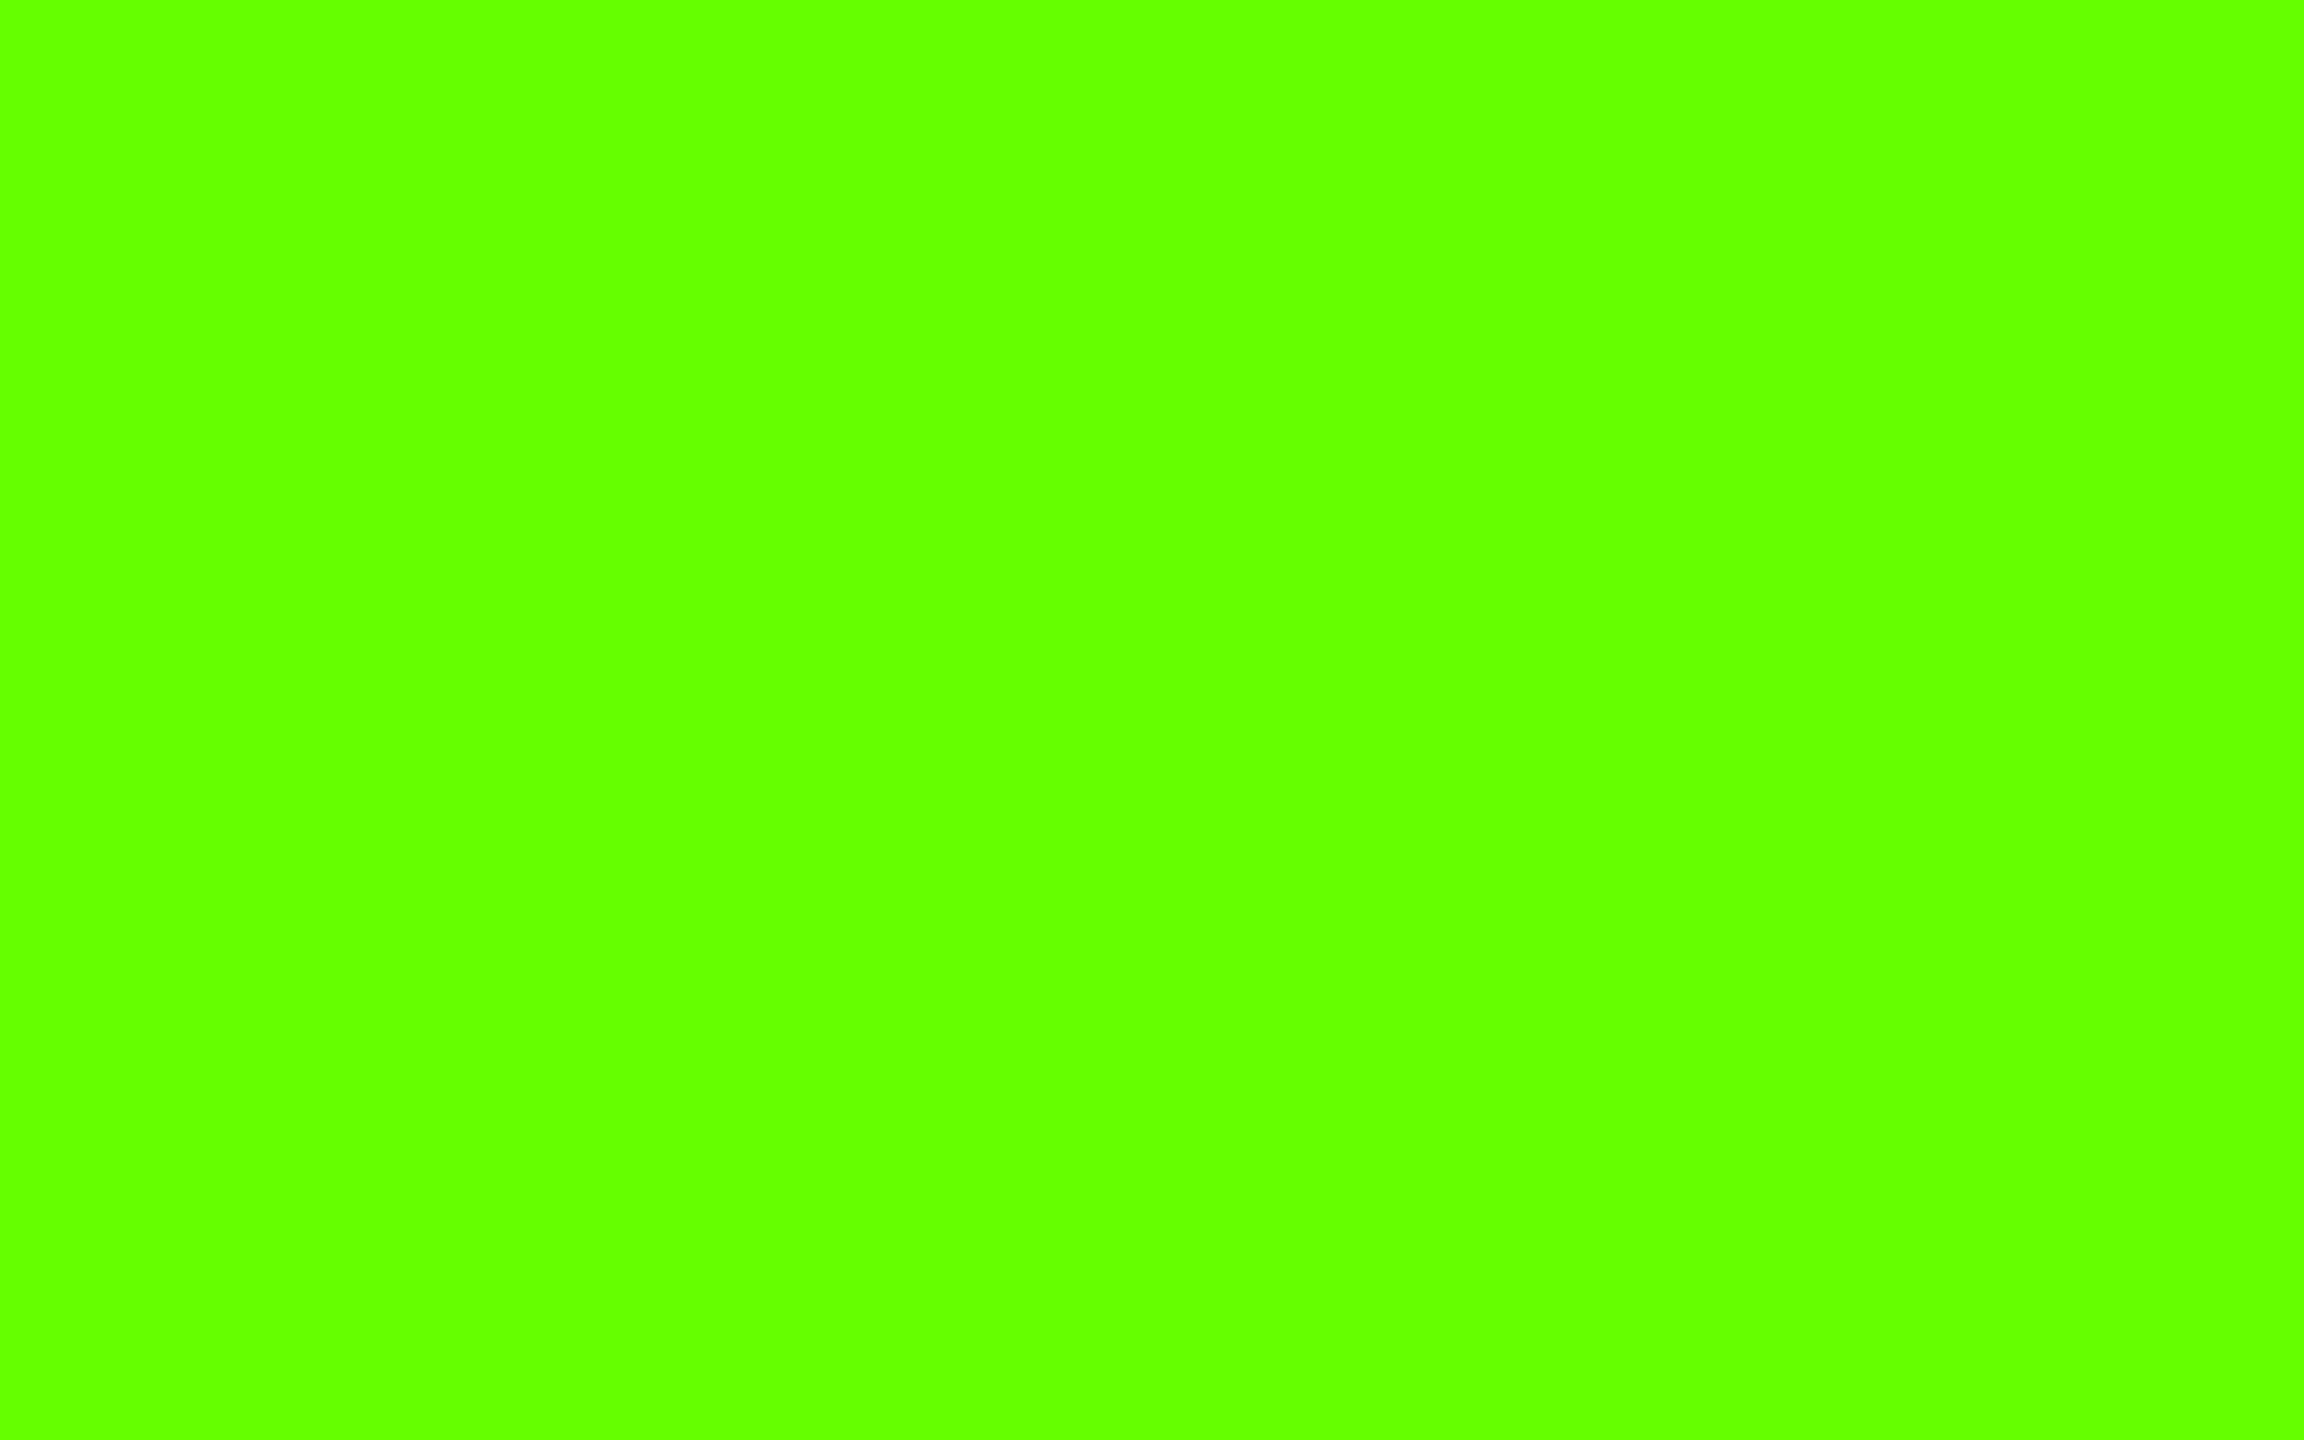 2304x1440 Bright Green Solid Color Background